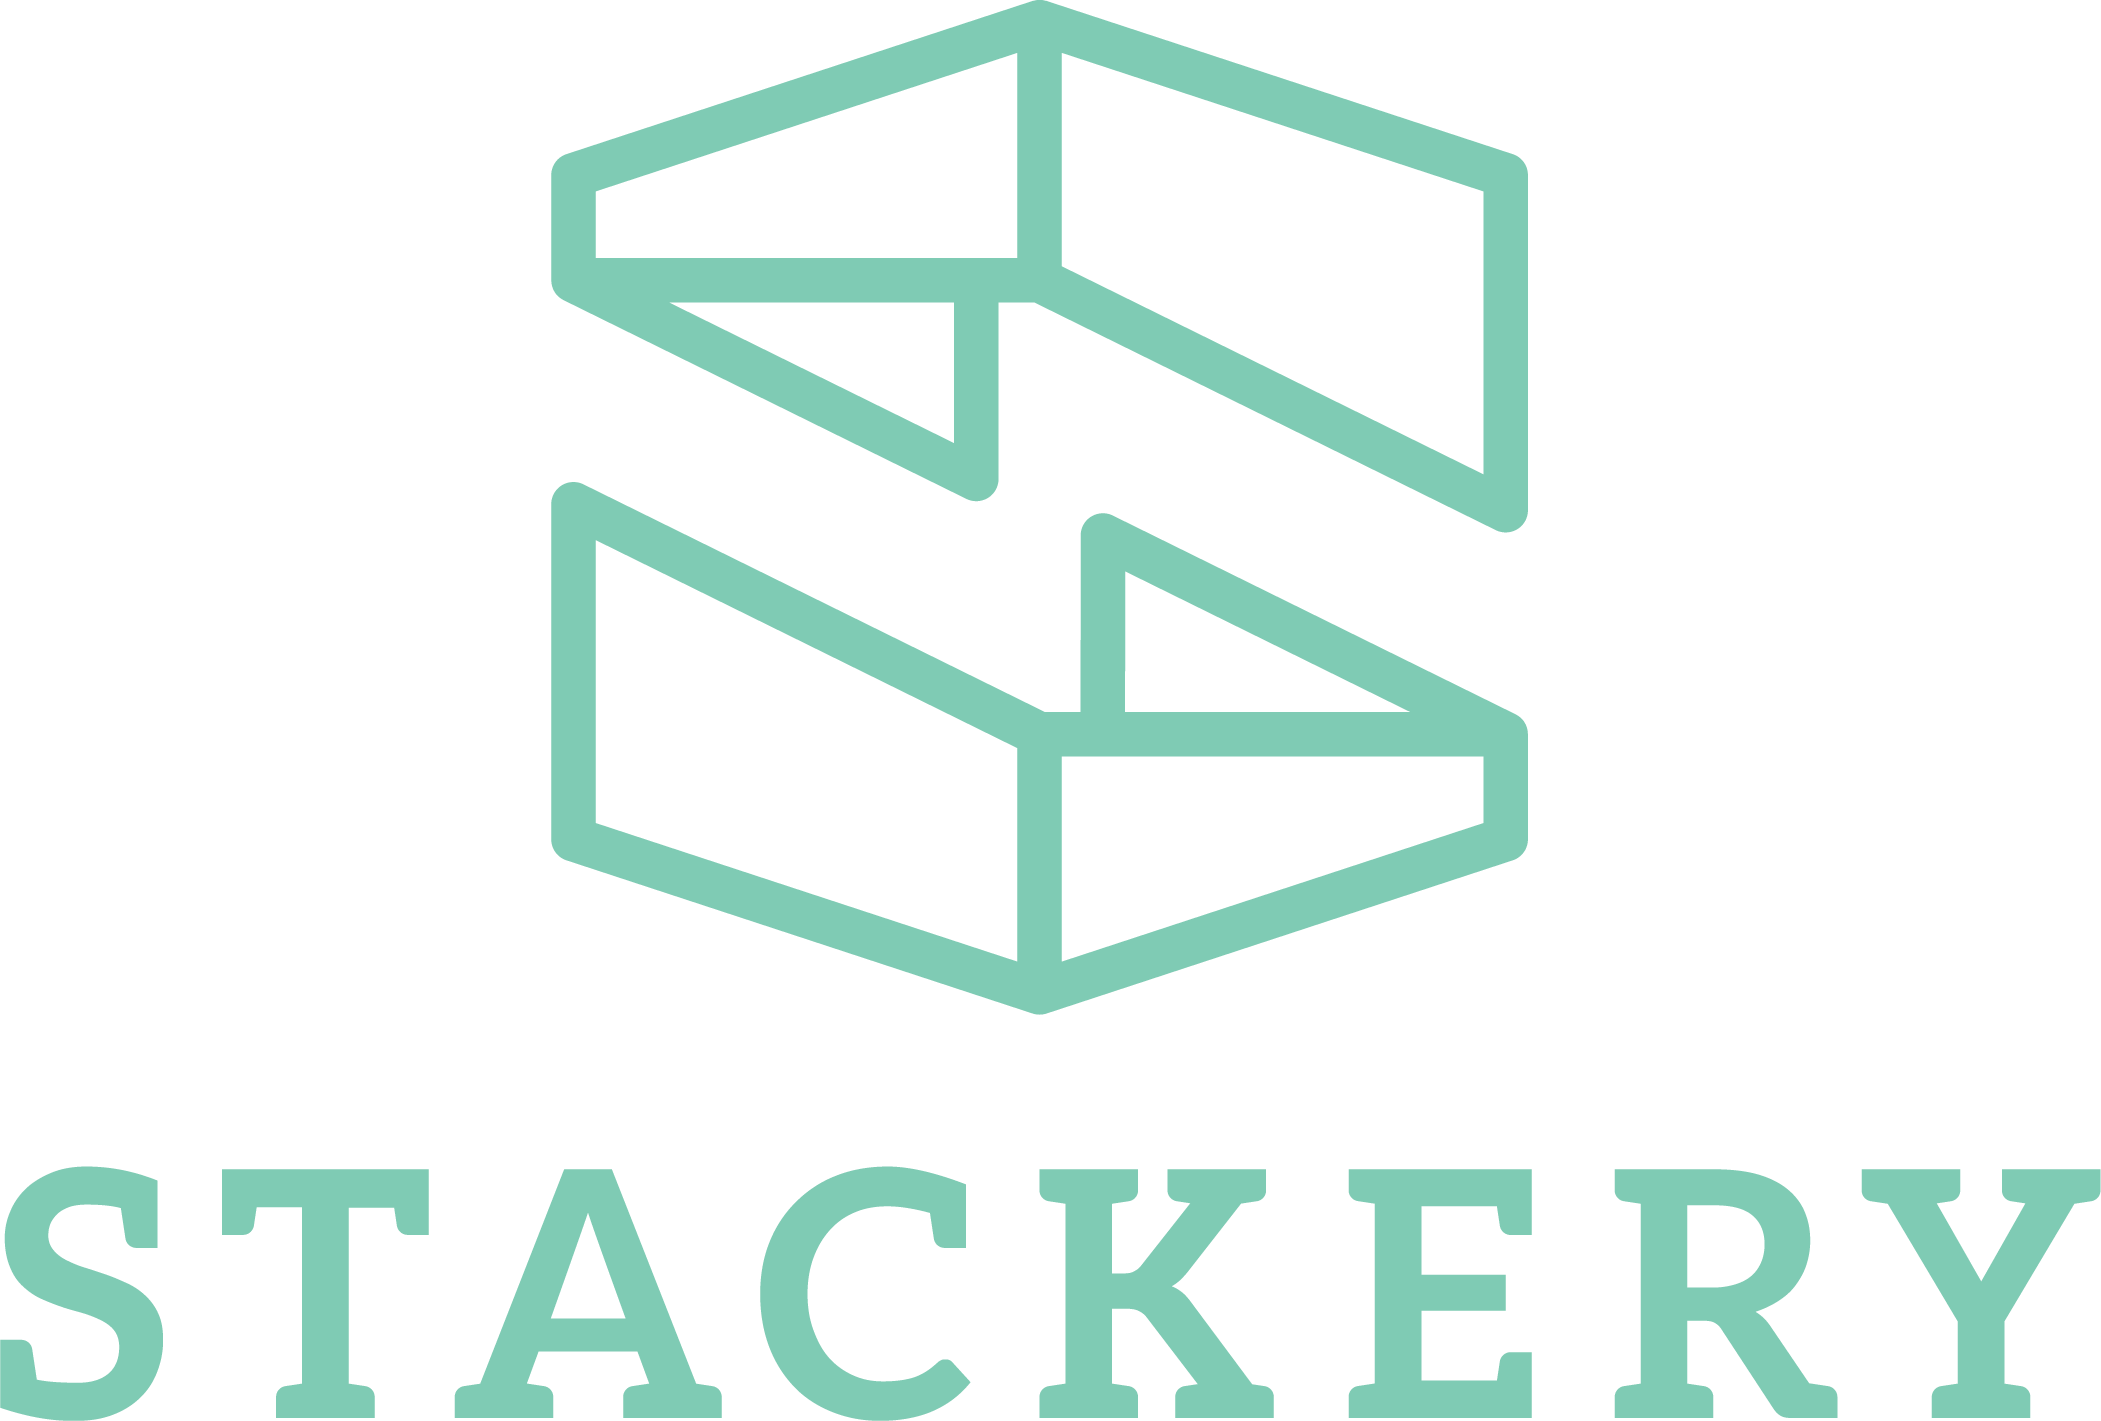 stackery-large-stacked-teal-w